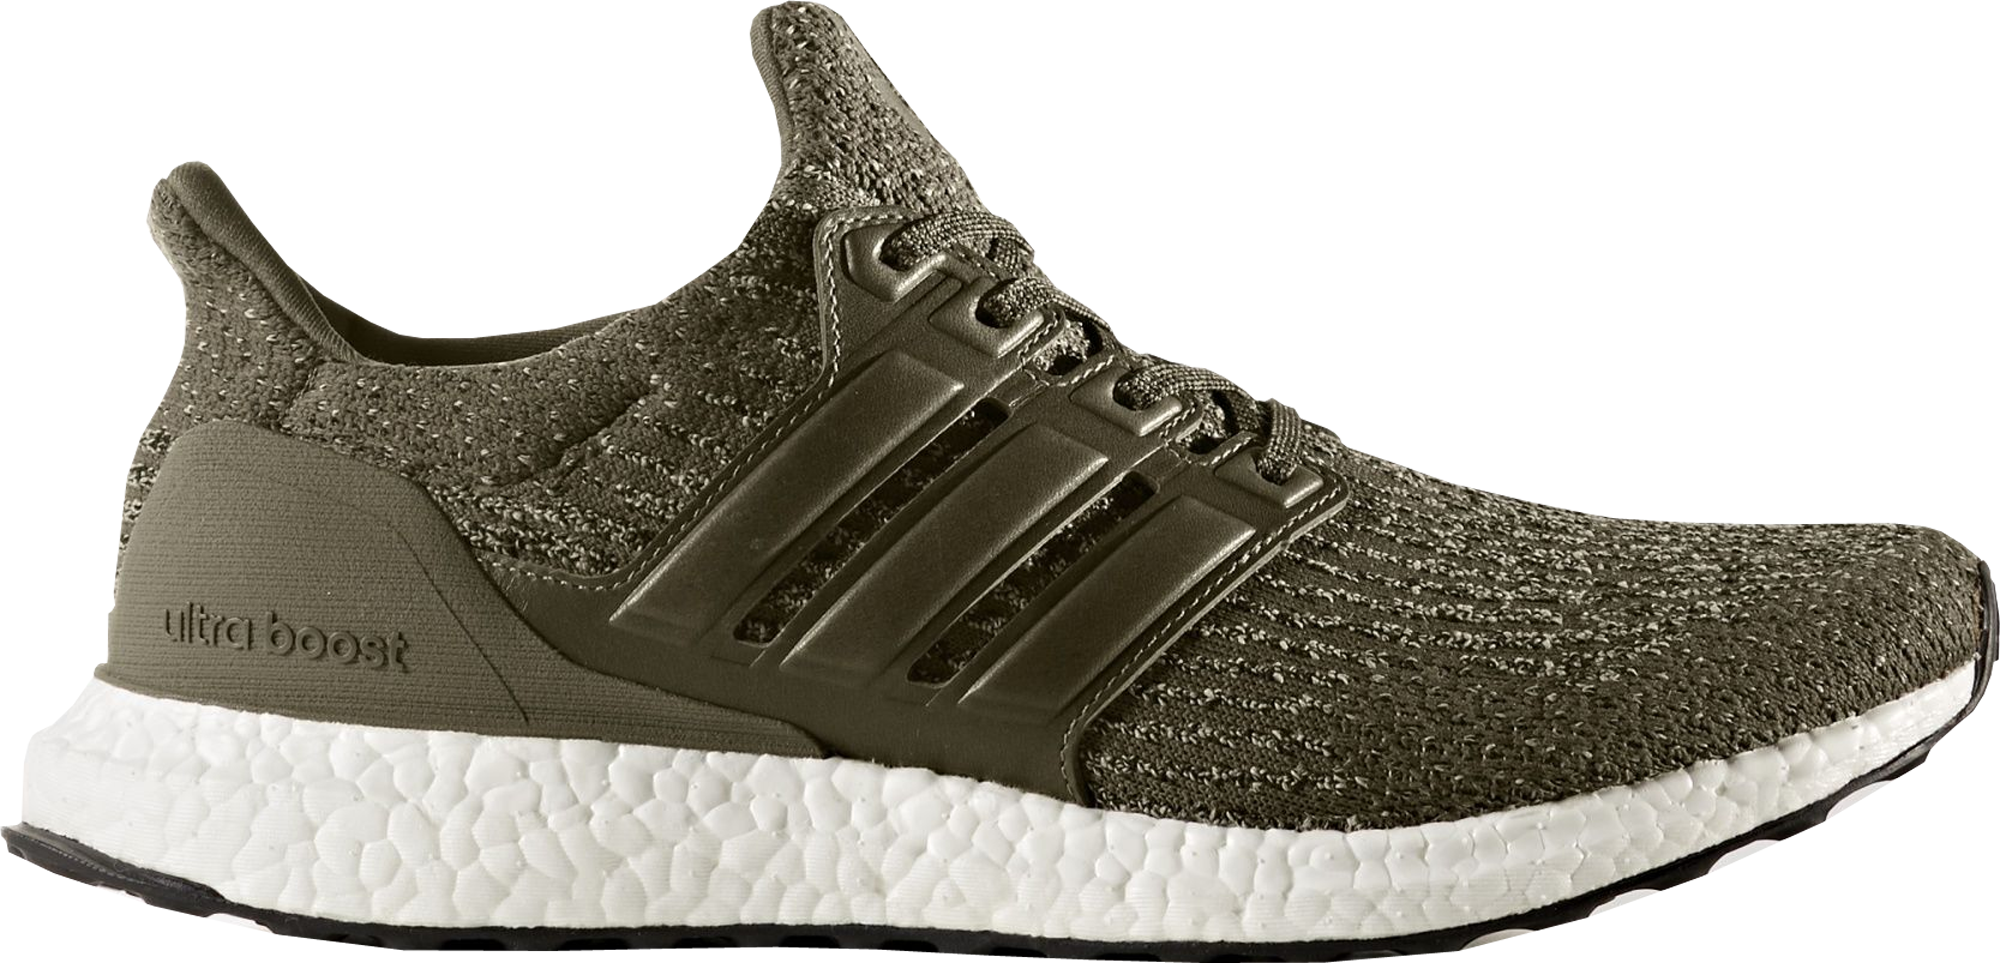 fc0c4994 adidas Ultra Boost 3.0 Trace Olive - StockX News